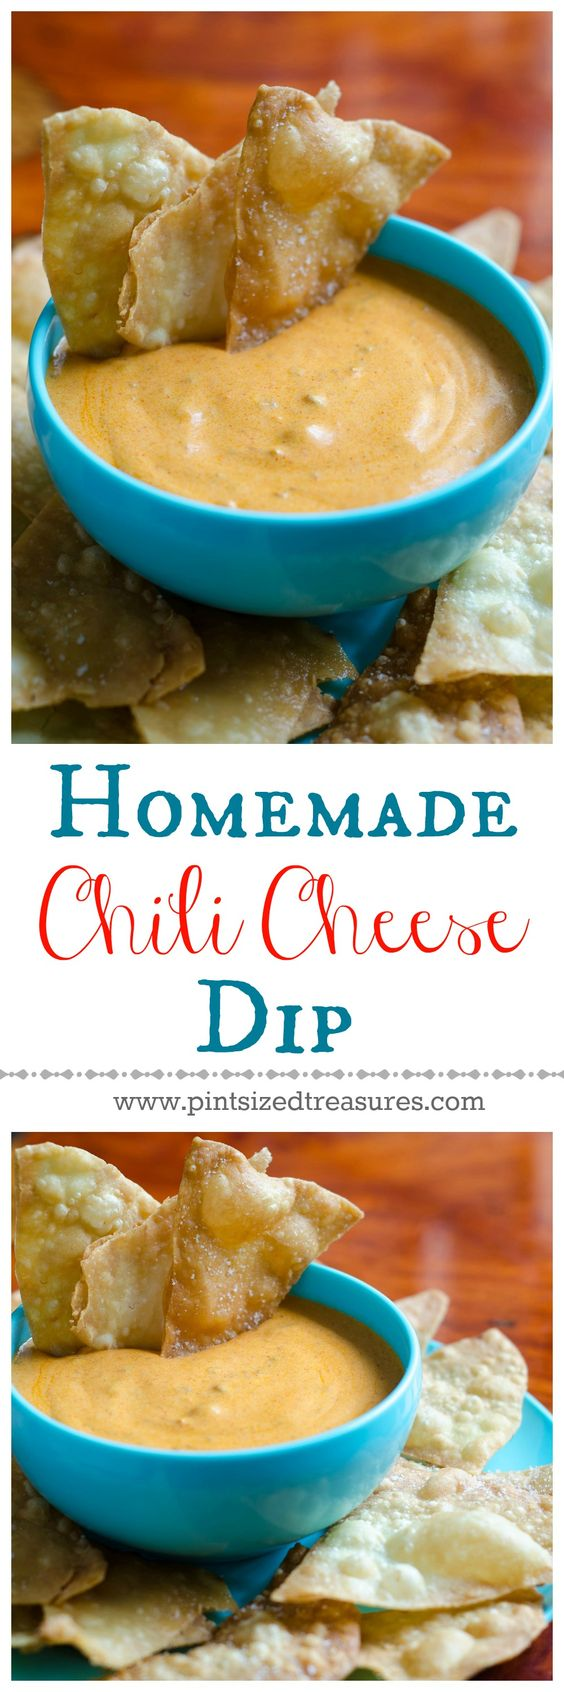 A super-easy chili cheese dip that doesn't use block, processed cheese! You can whip up this recipe on your stove in minutes! Easy homemade tortilla chips recipe is also included. Get ready for the best munching session in town! YUM!